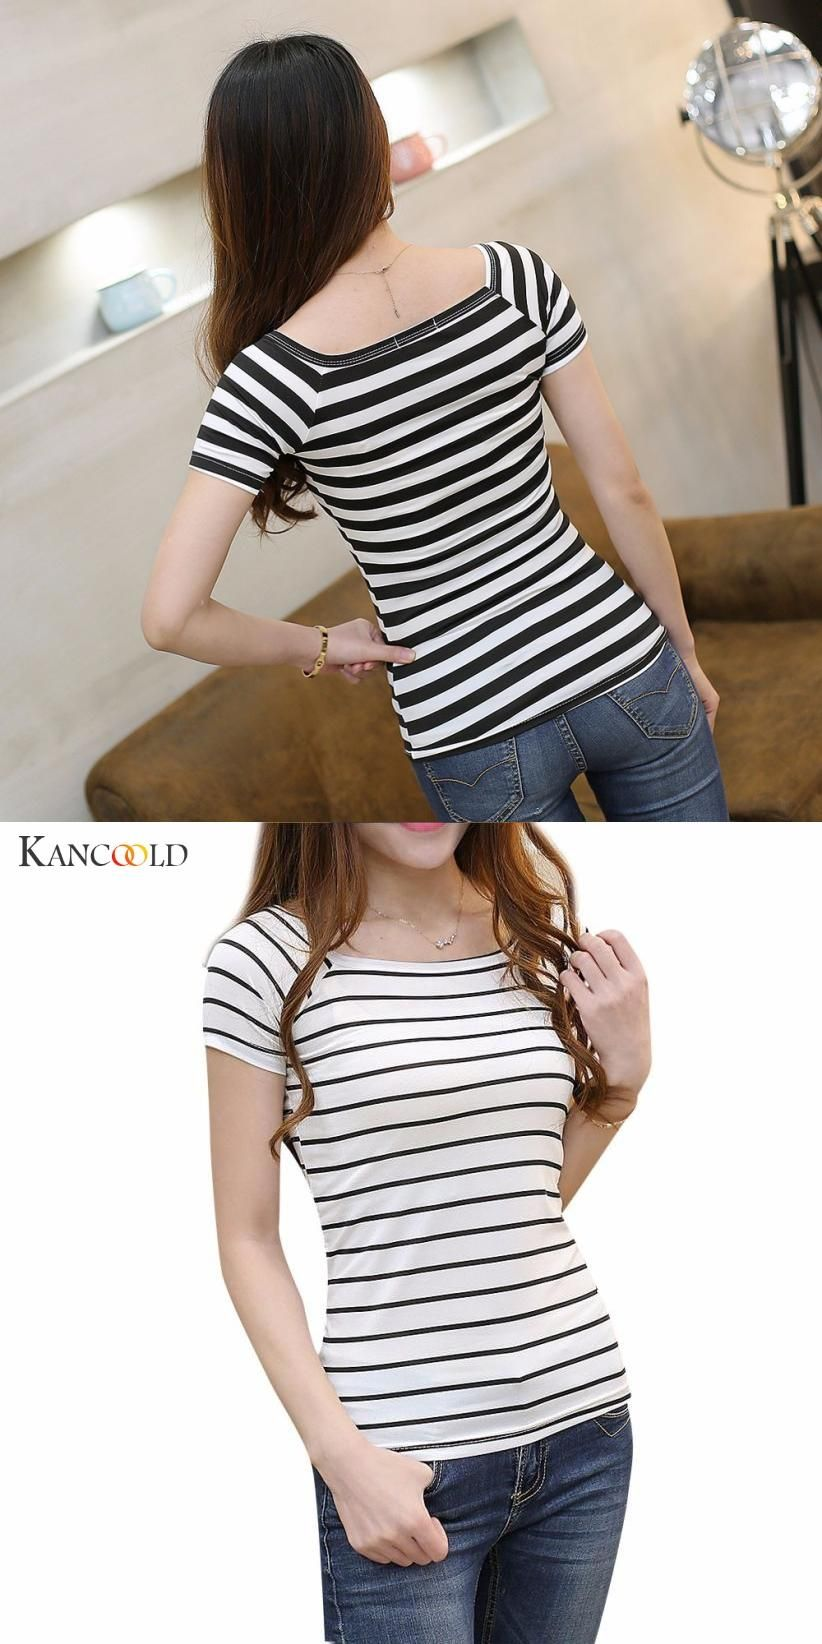 20d0df2002878 Discover ideas about Sleeve Styles. Fashion Women Short Sleeve Tshirt Black  White Striped Casual T-Shirt Female Summer Girls Cotton ...